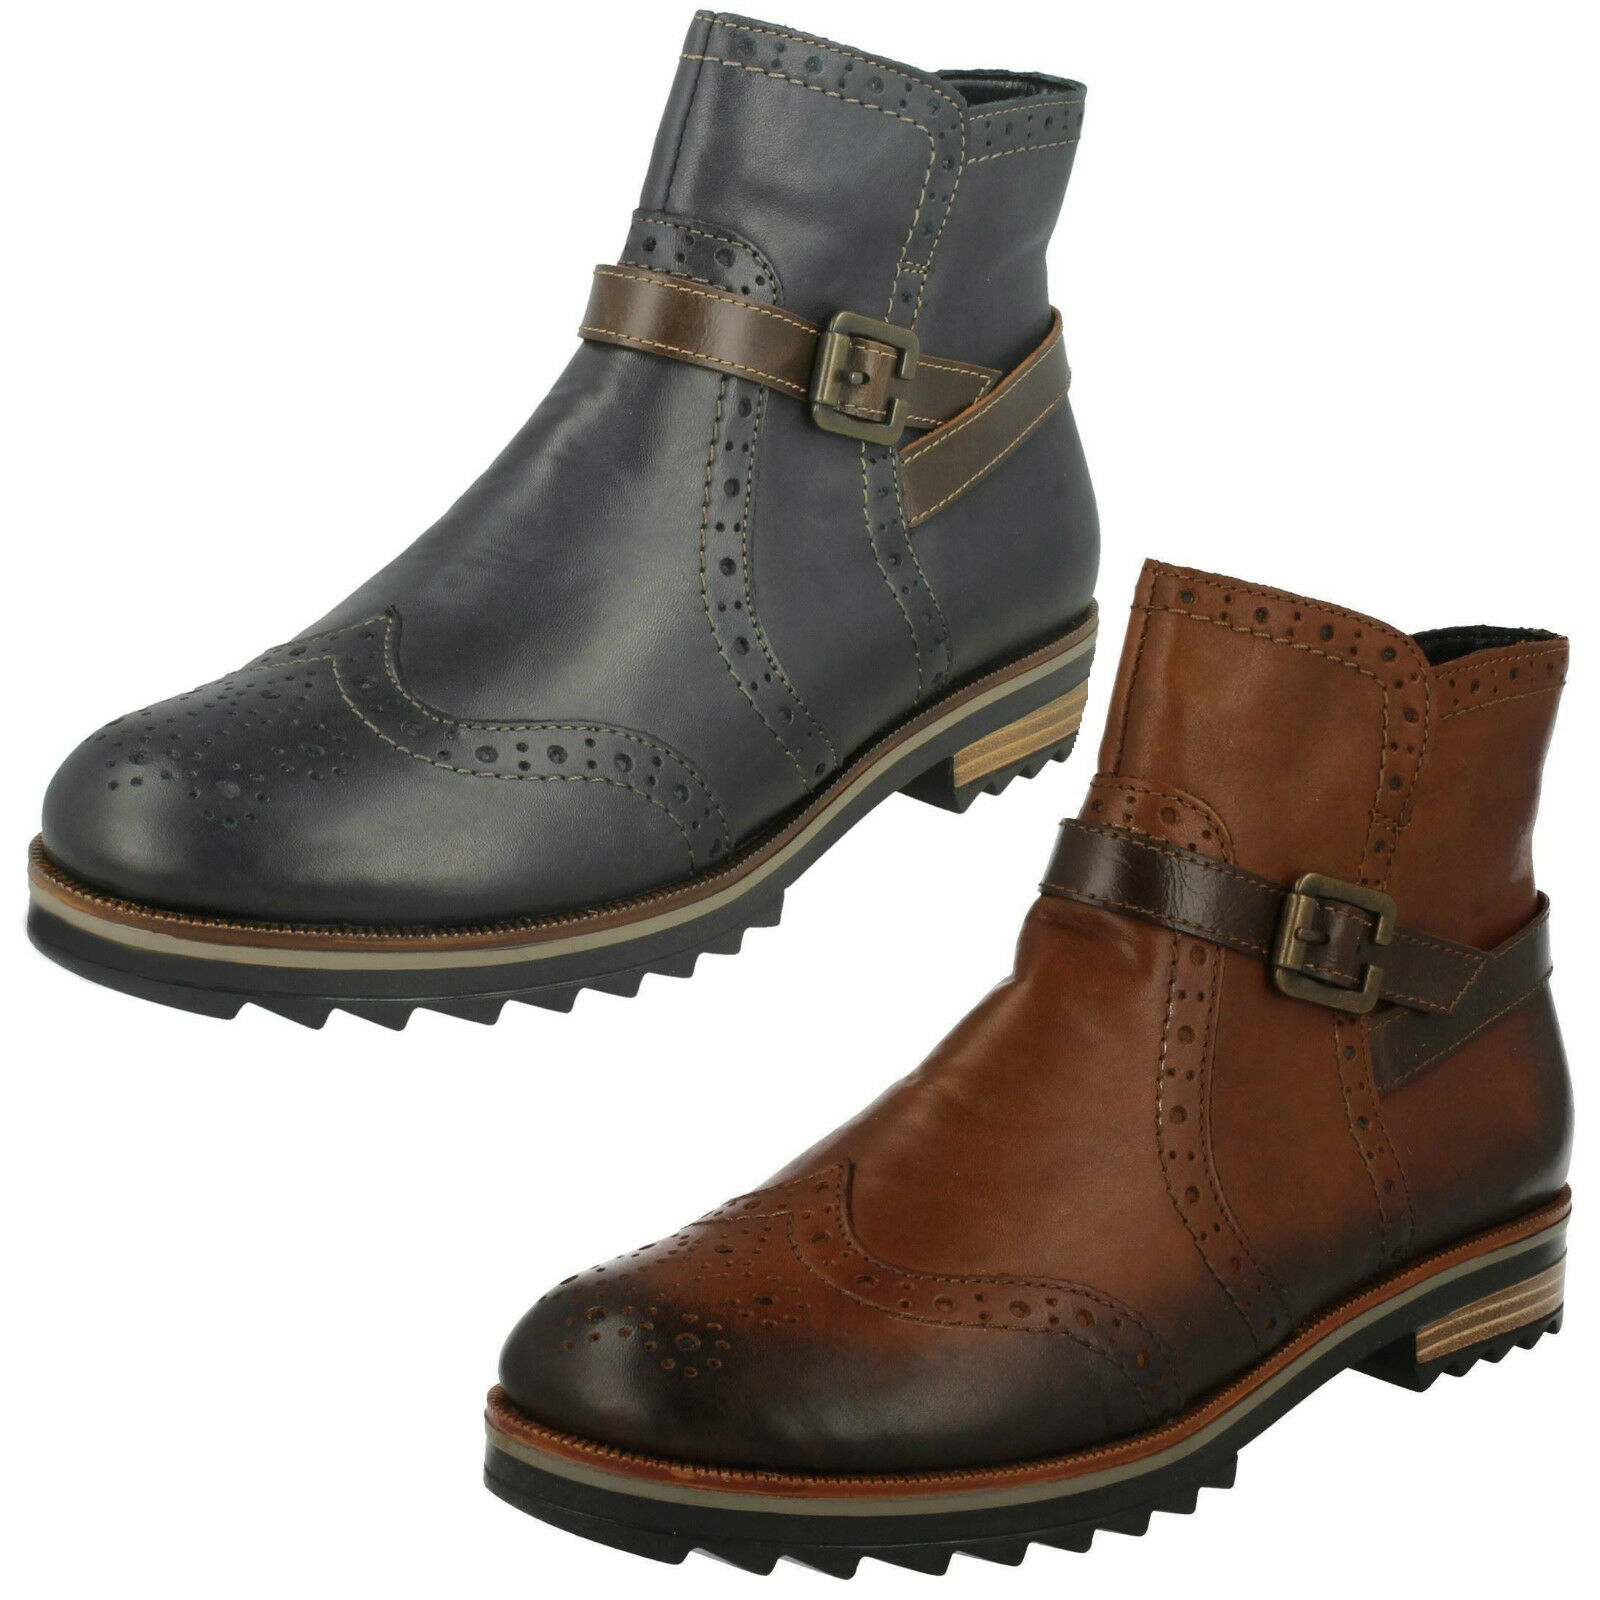 Ladies Remonte R2278 Brown & Blue Leather Zip Up Bnkle Boots